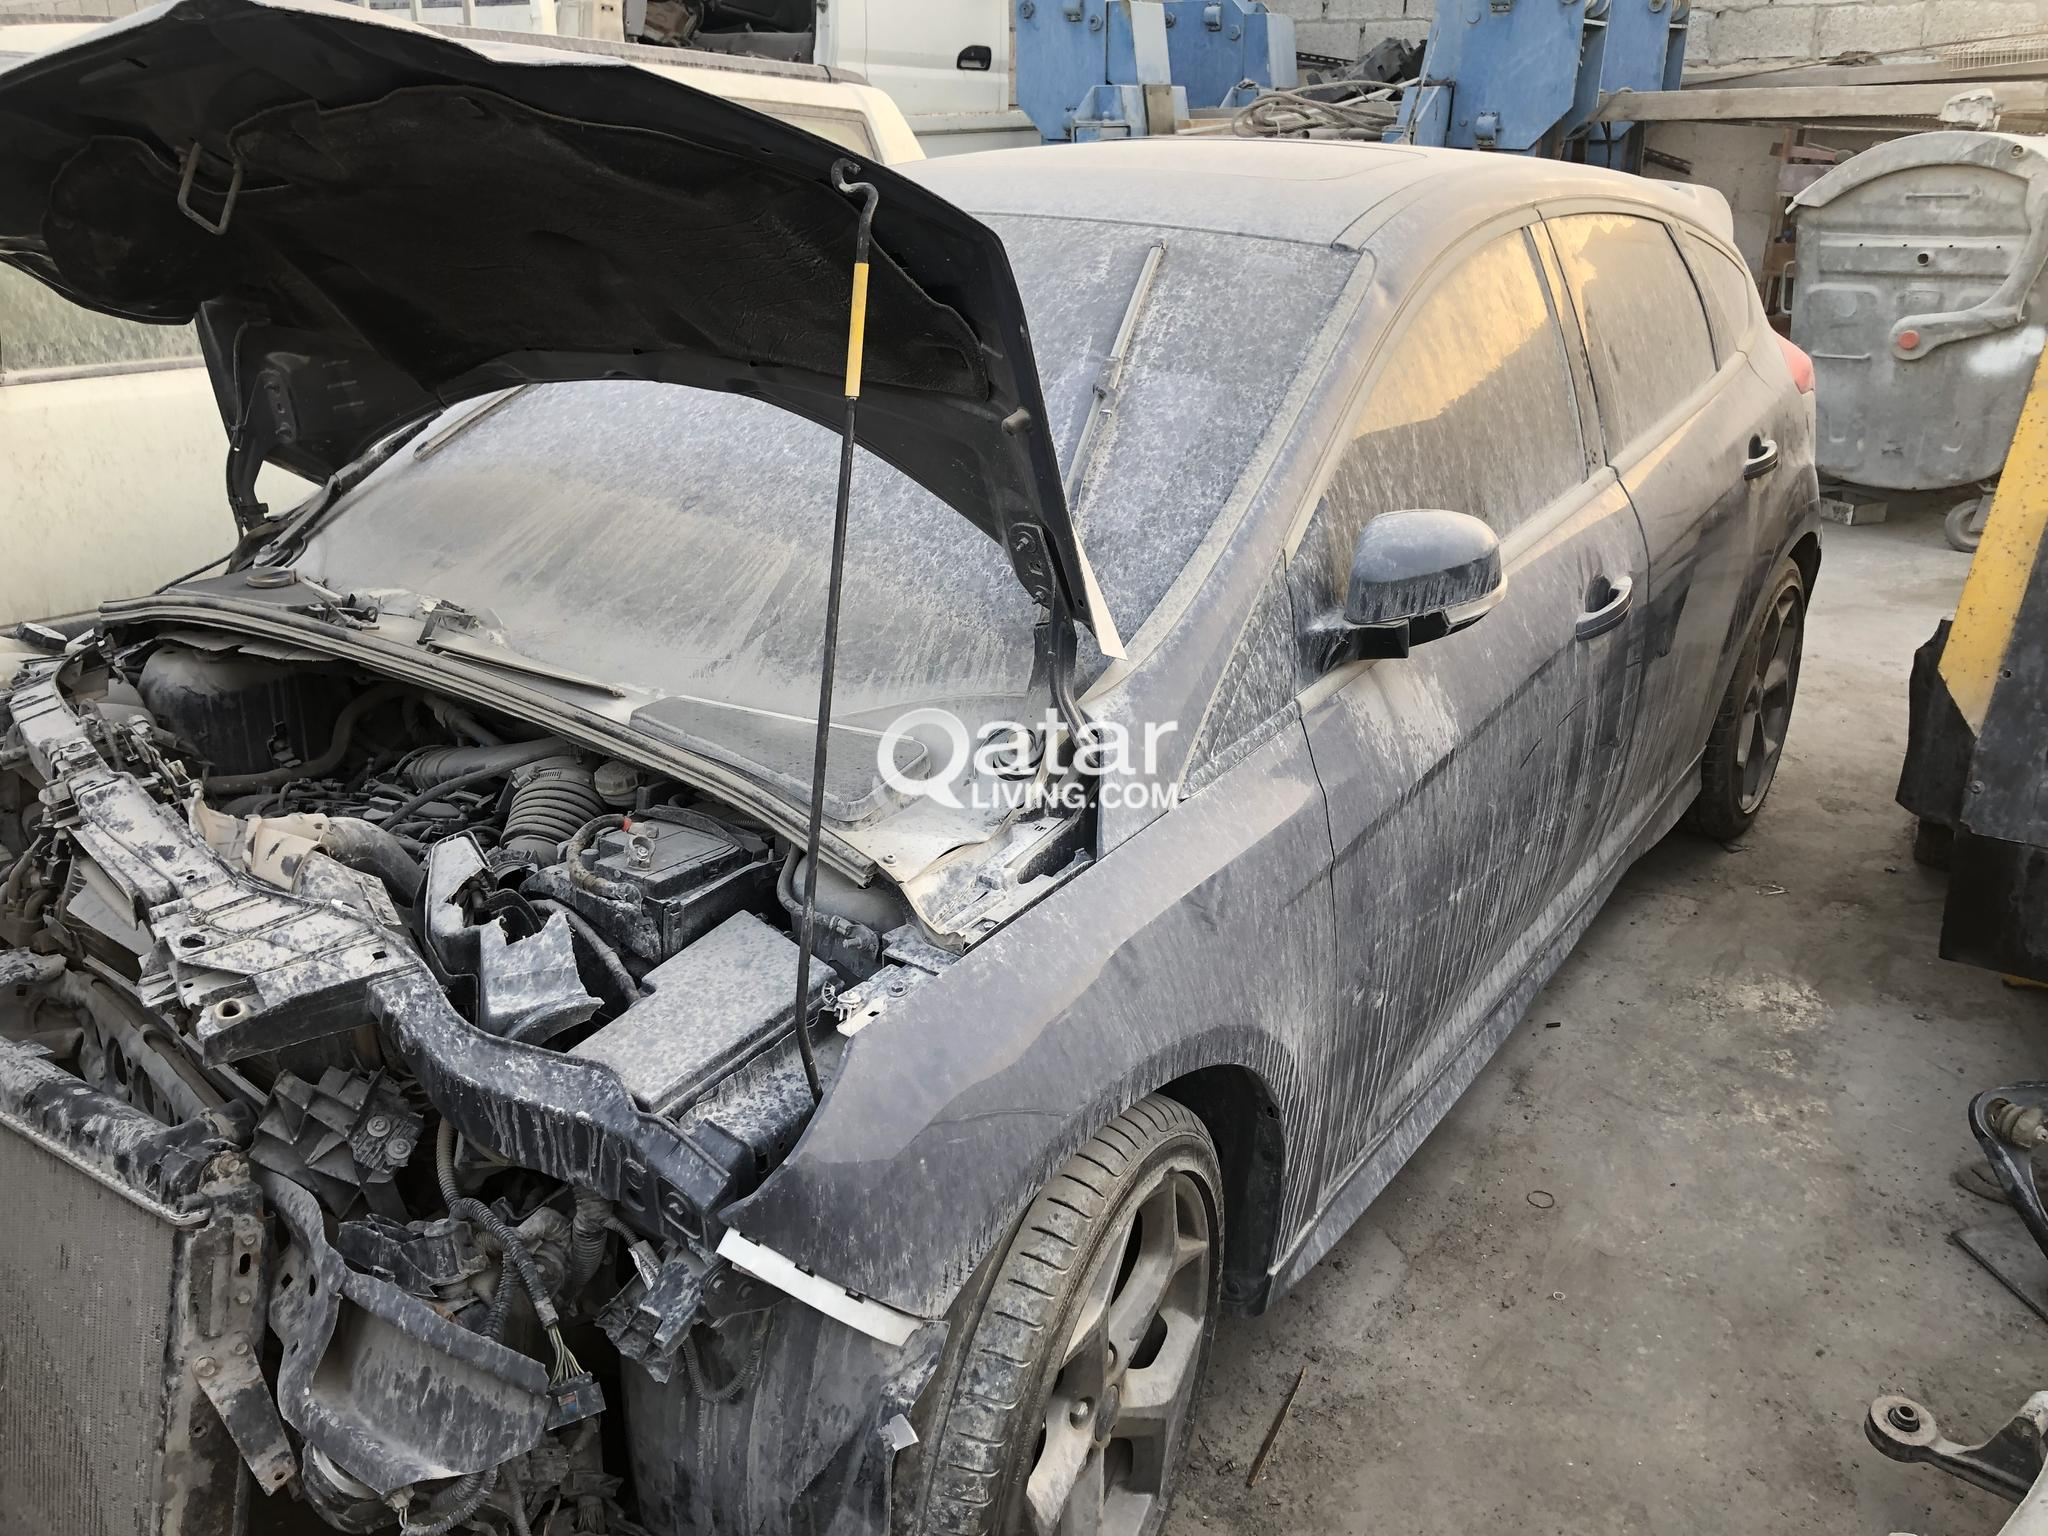 Focus St Parts >> Ford Focus St 2016 Qatar Living